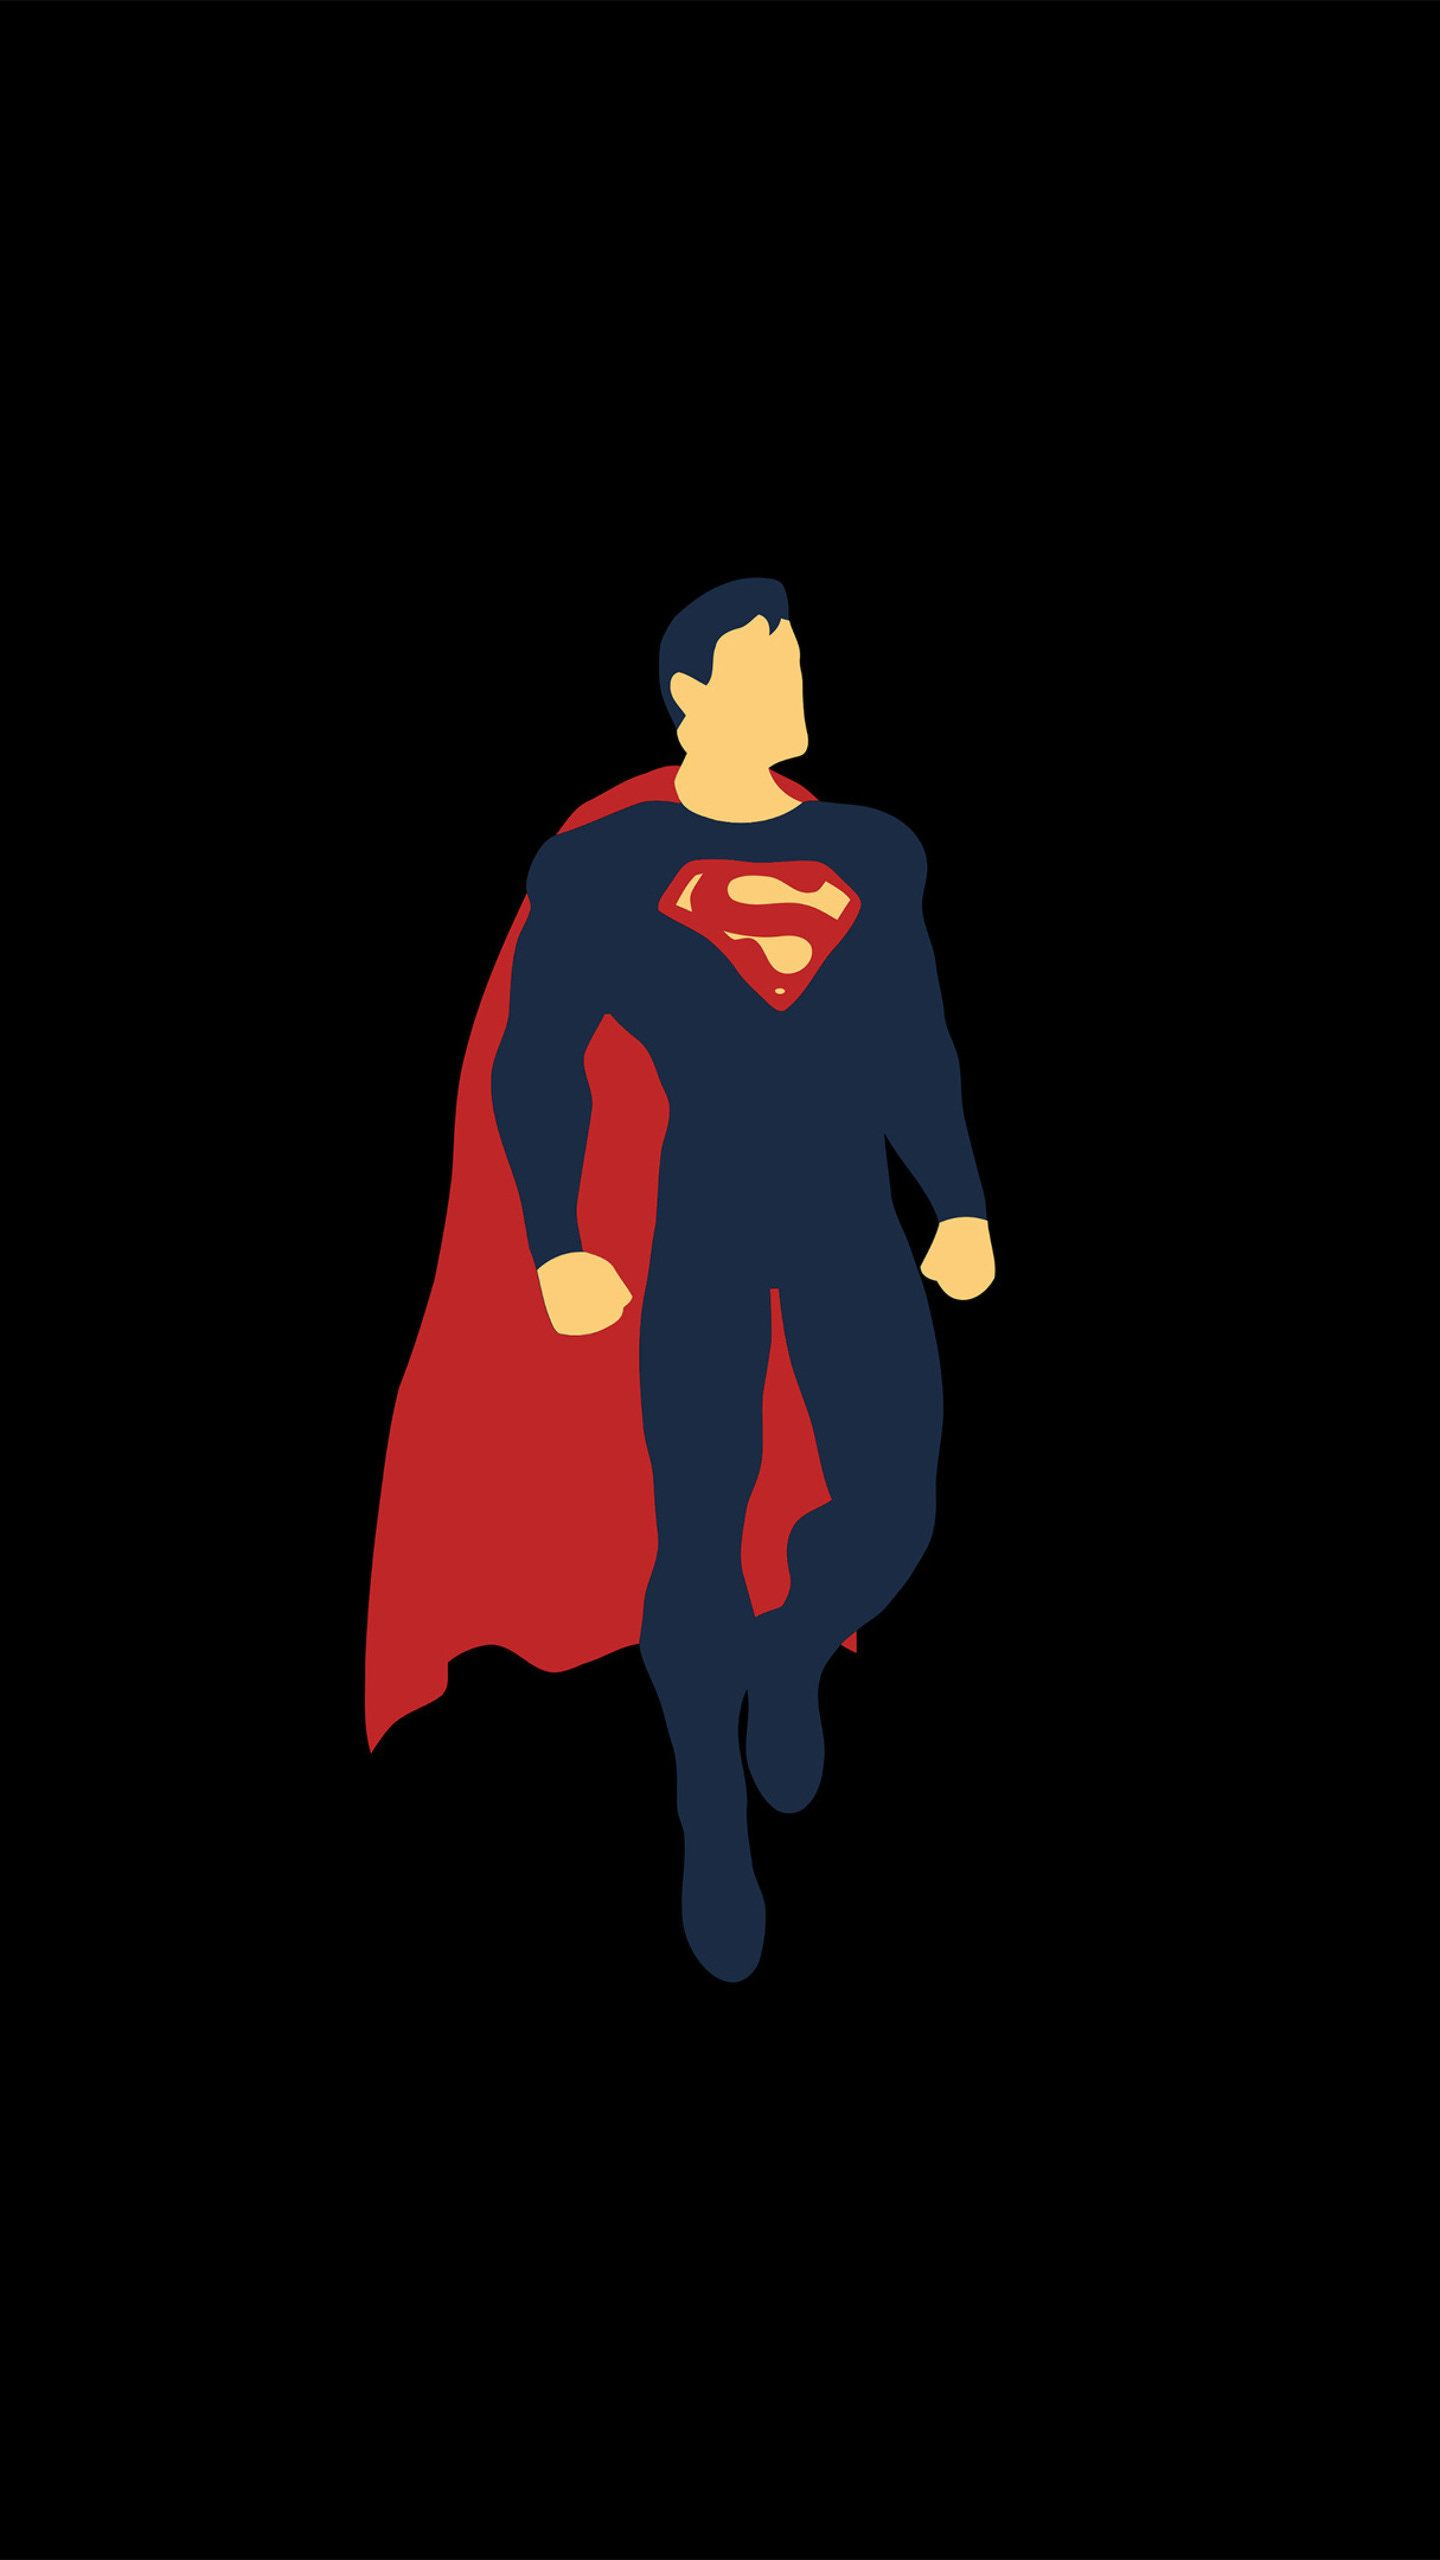 Superman Minimalism 4k Hd Superheroes Wallpapers Photos And Pictures Id 18590 Superman Wallpaper Superman Art Hero Poster